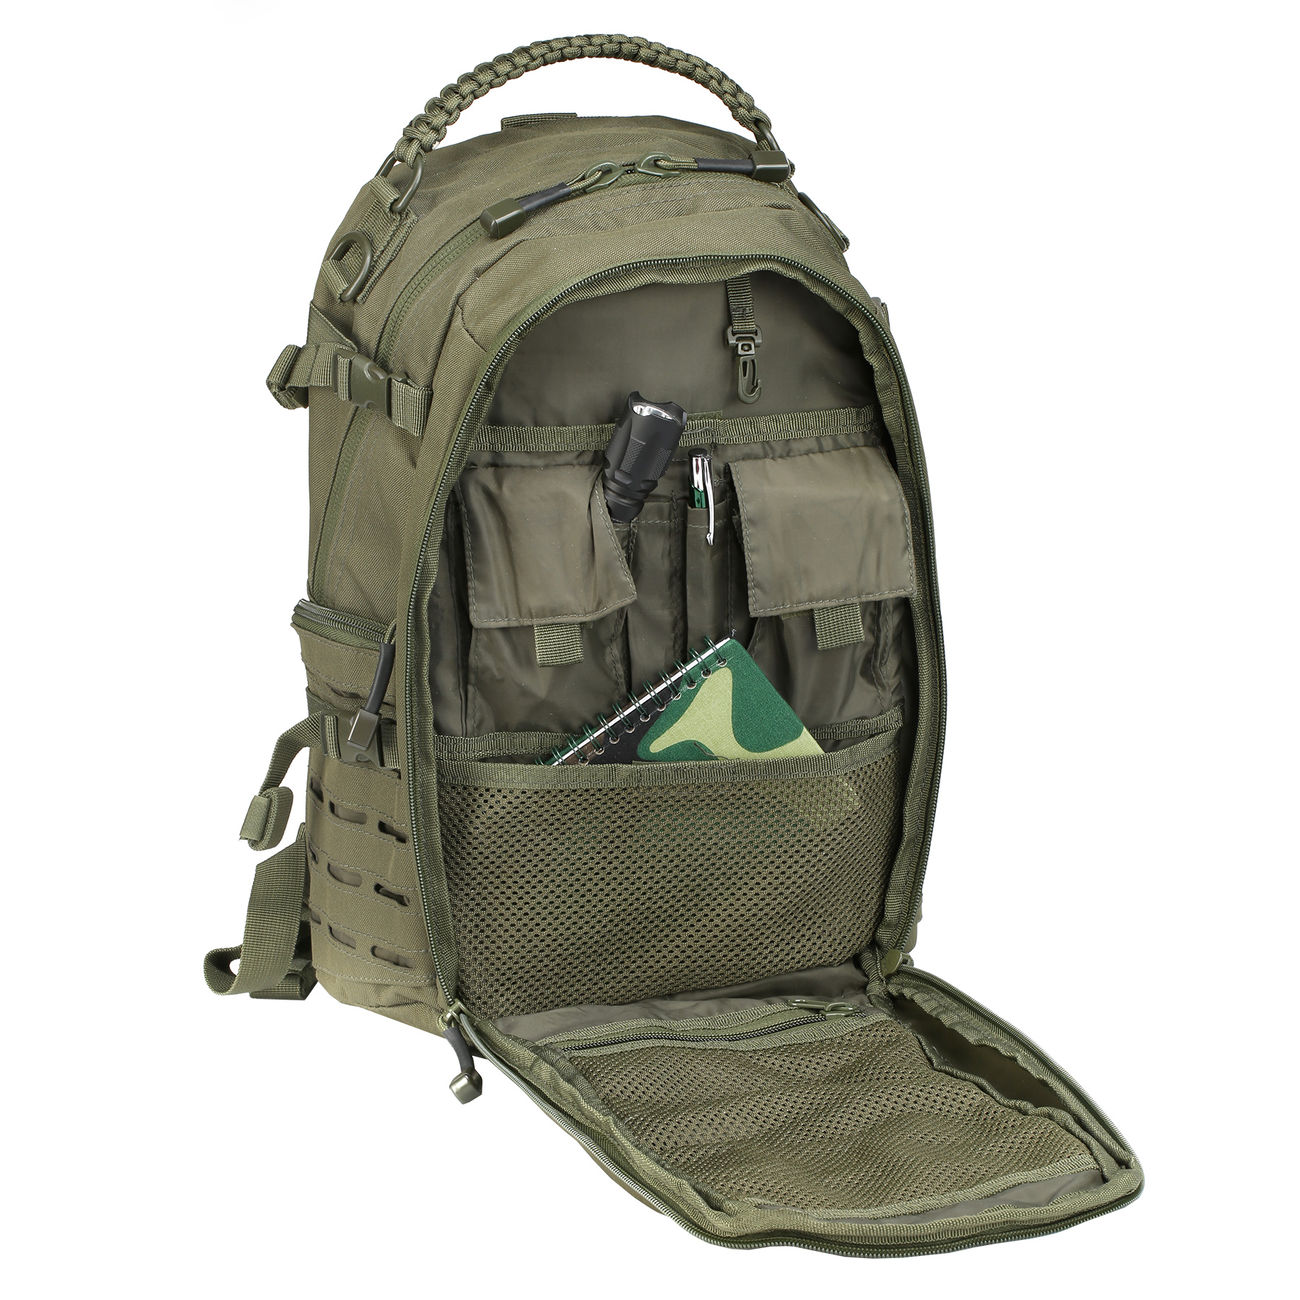 Mil-Tec Rucksack Mission Pack Laser Cut Small oliv 7